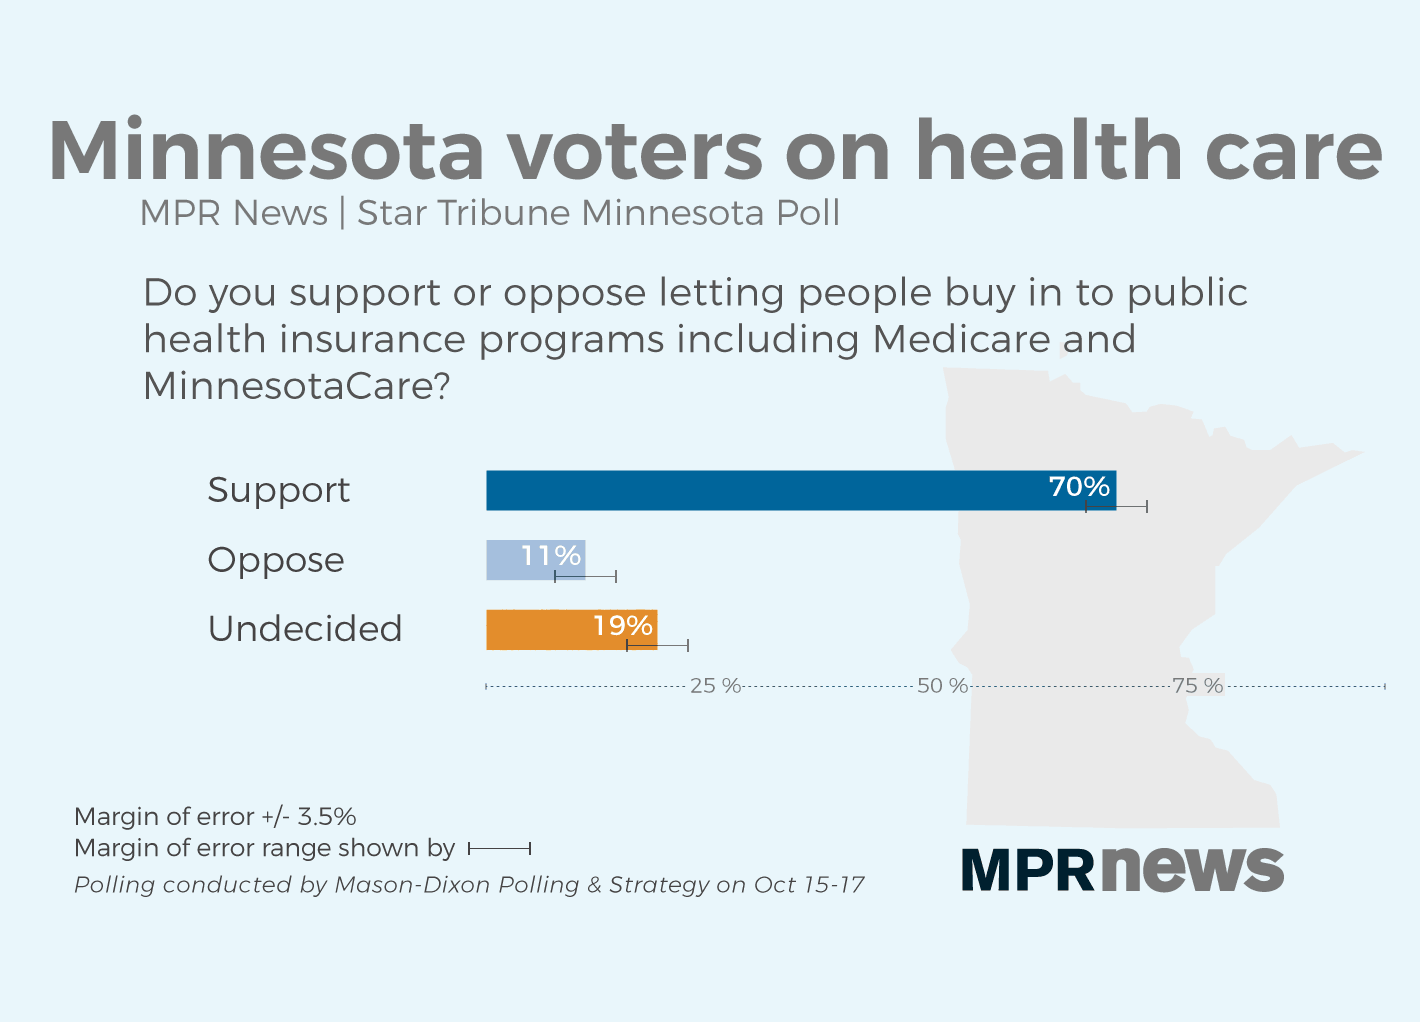 Most Minnesotans support buying into public health insurance